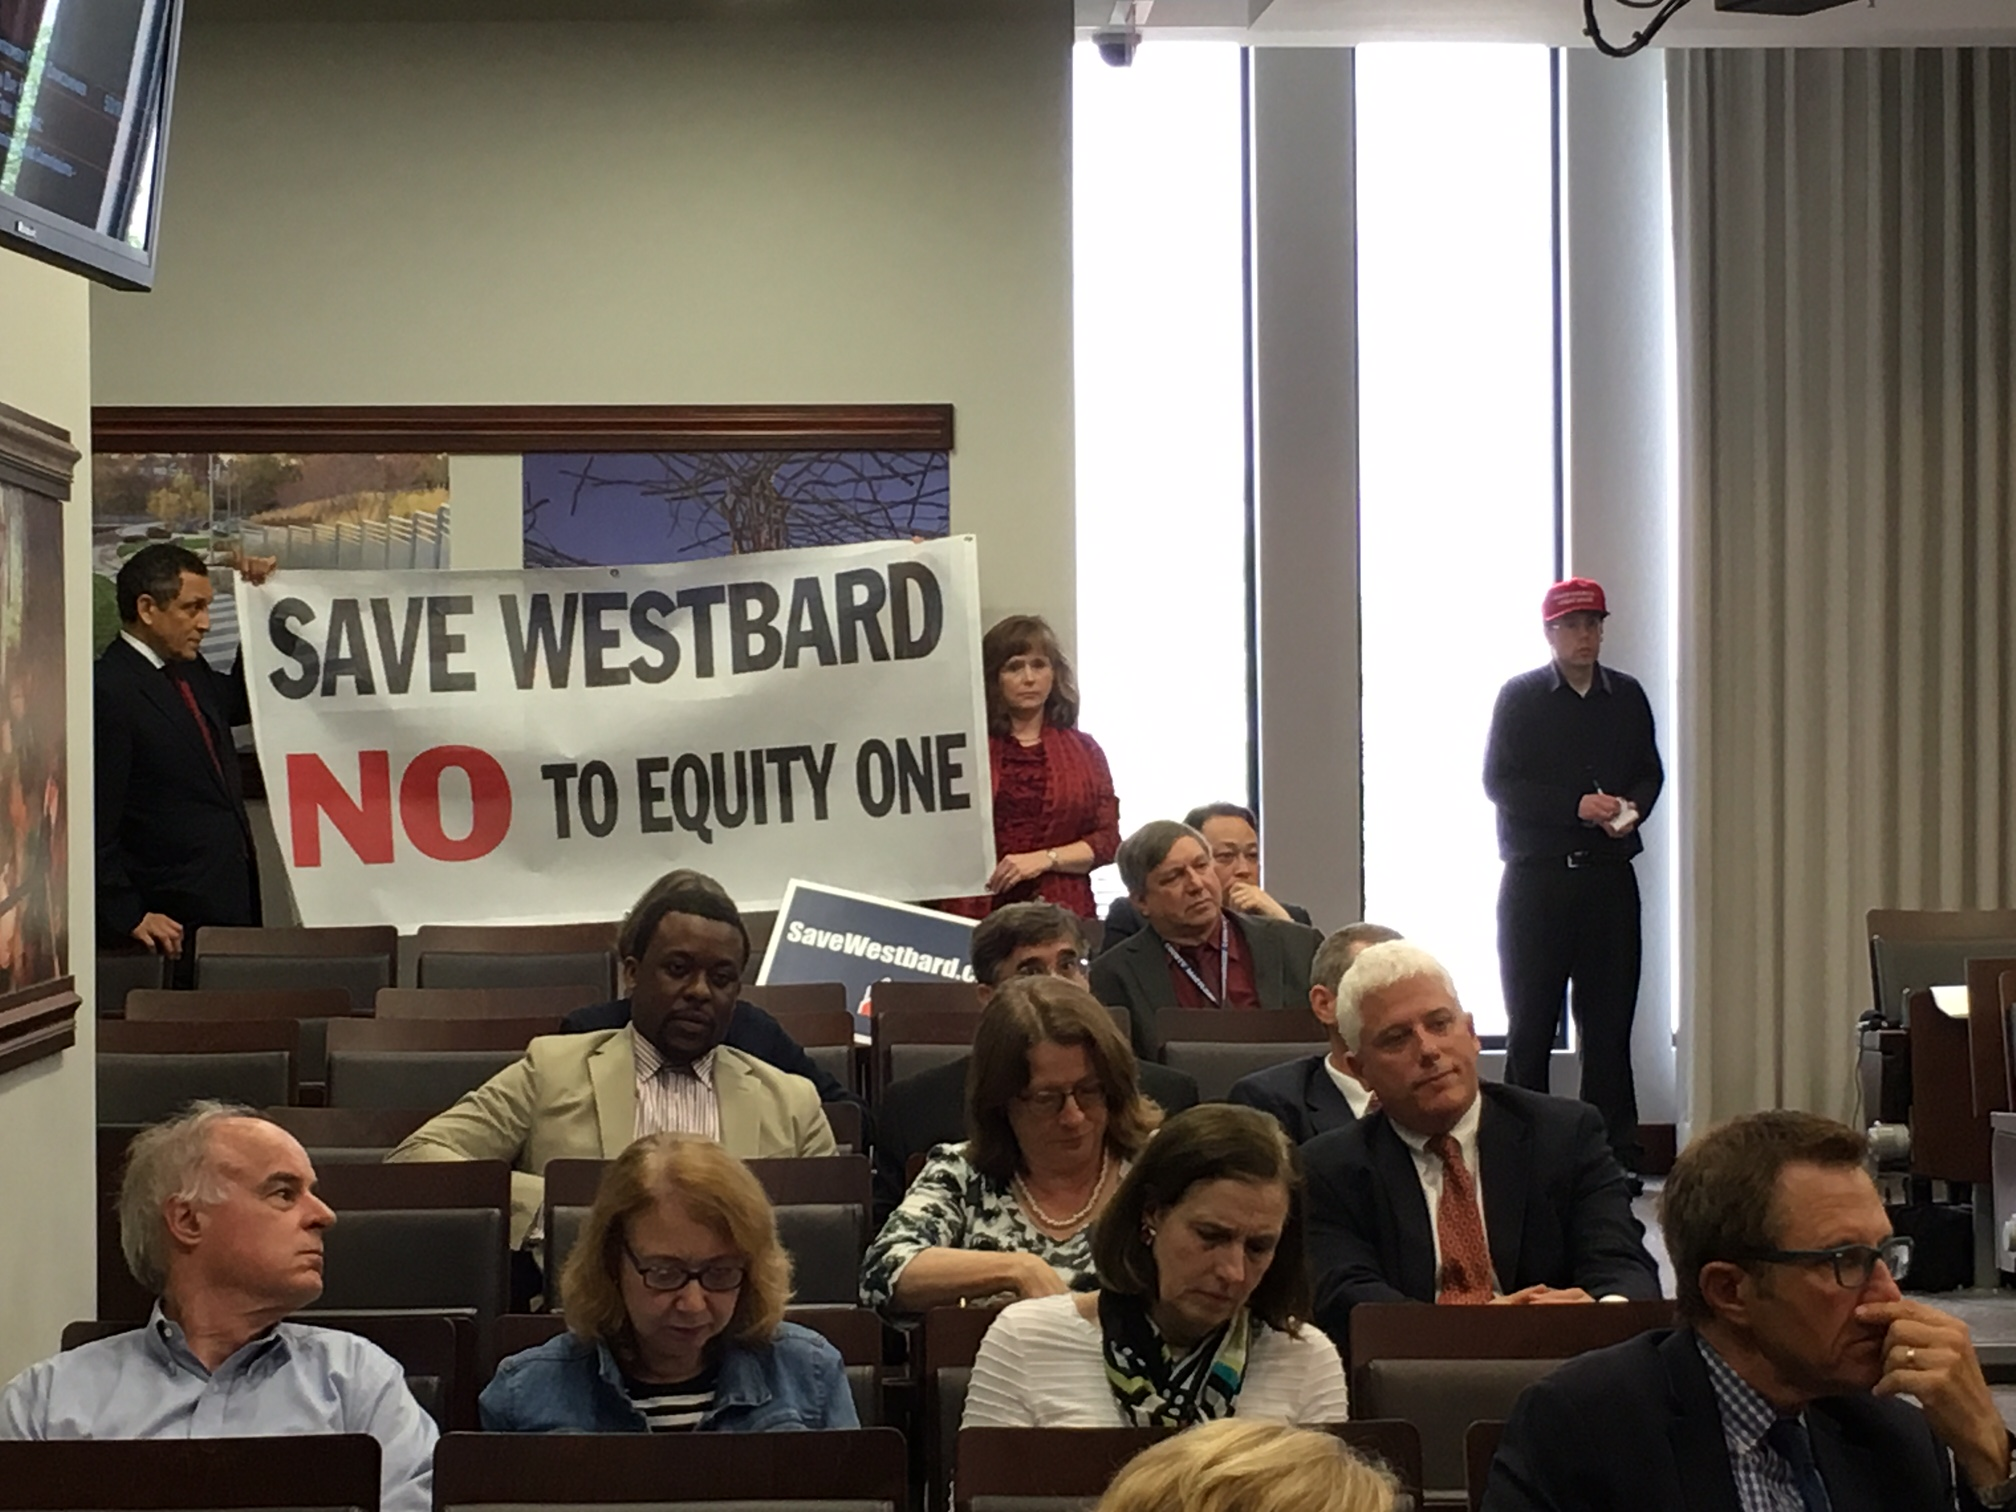 Westbard sector plan approved for Bethesda